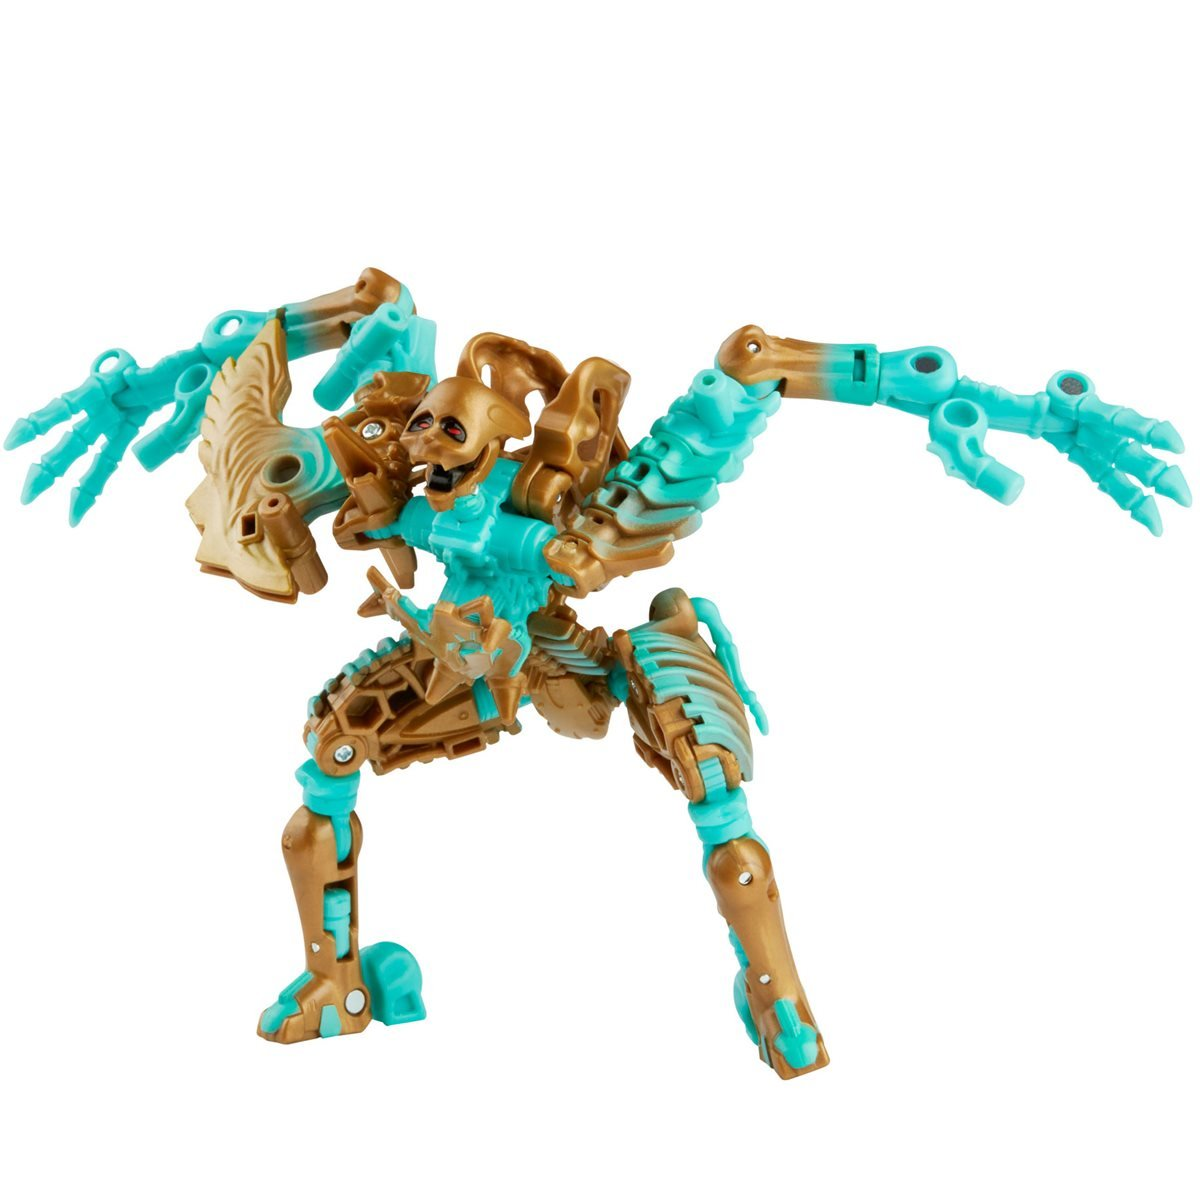 Transformers Generations Selects War for Cybertron Deluxe Transmutate-5.jpg